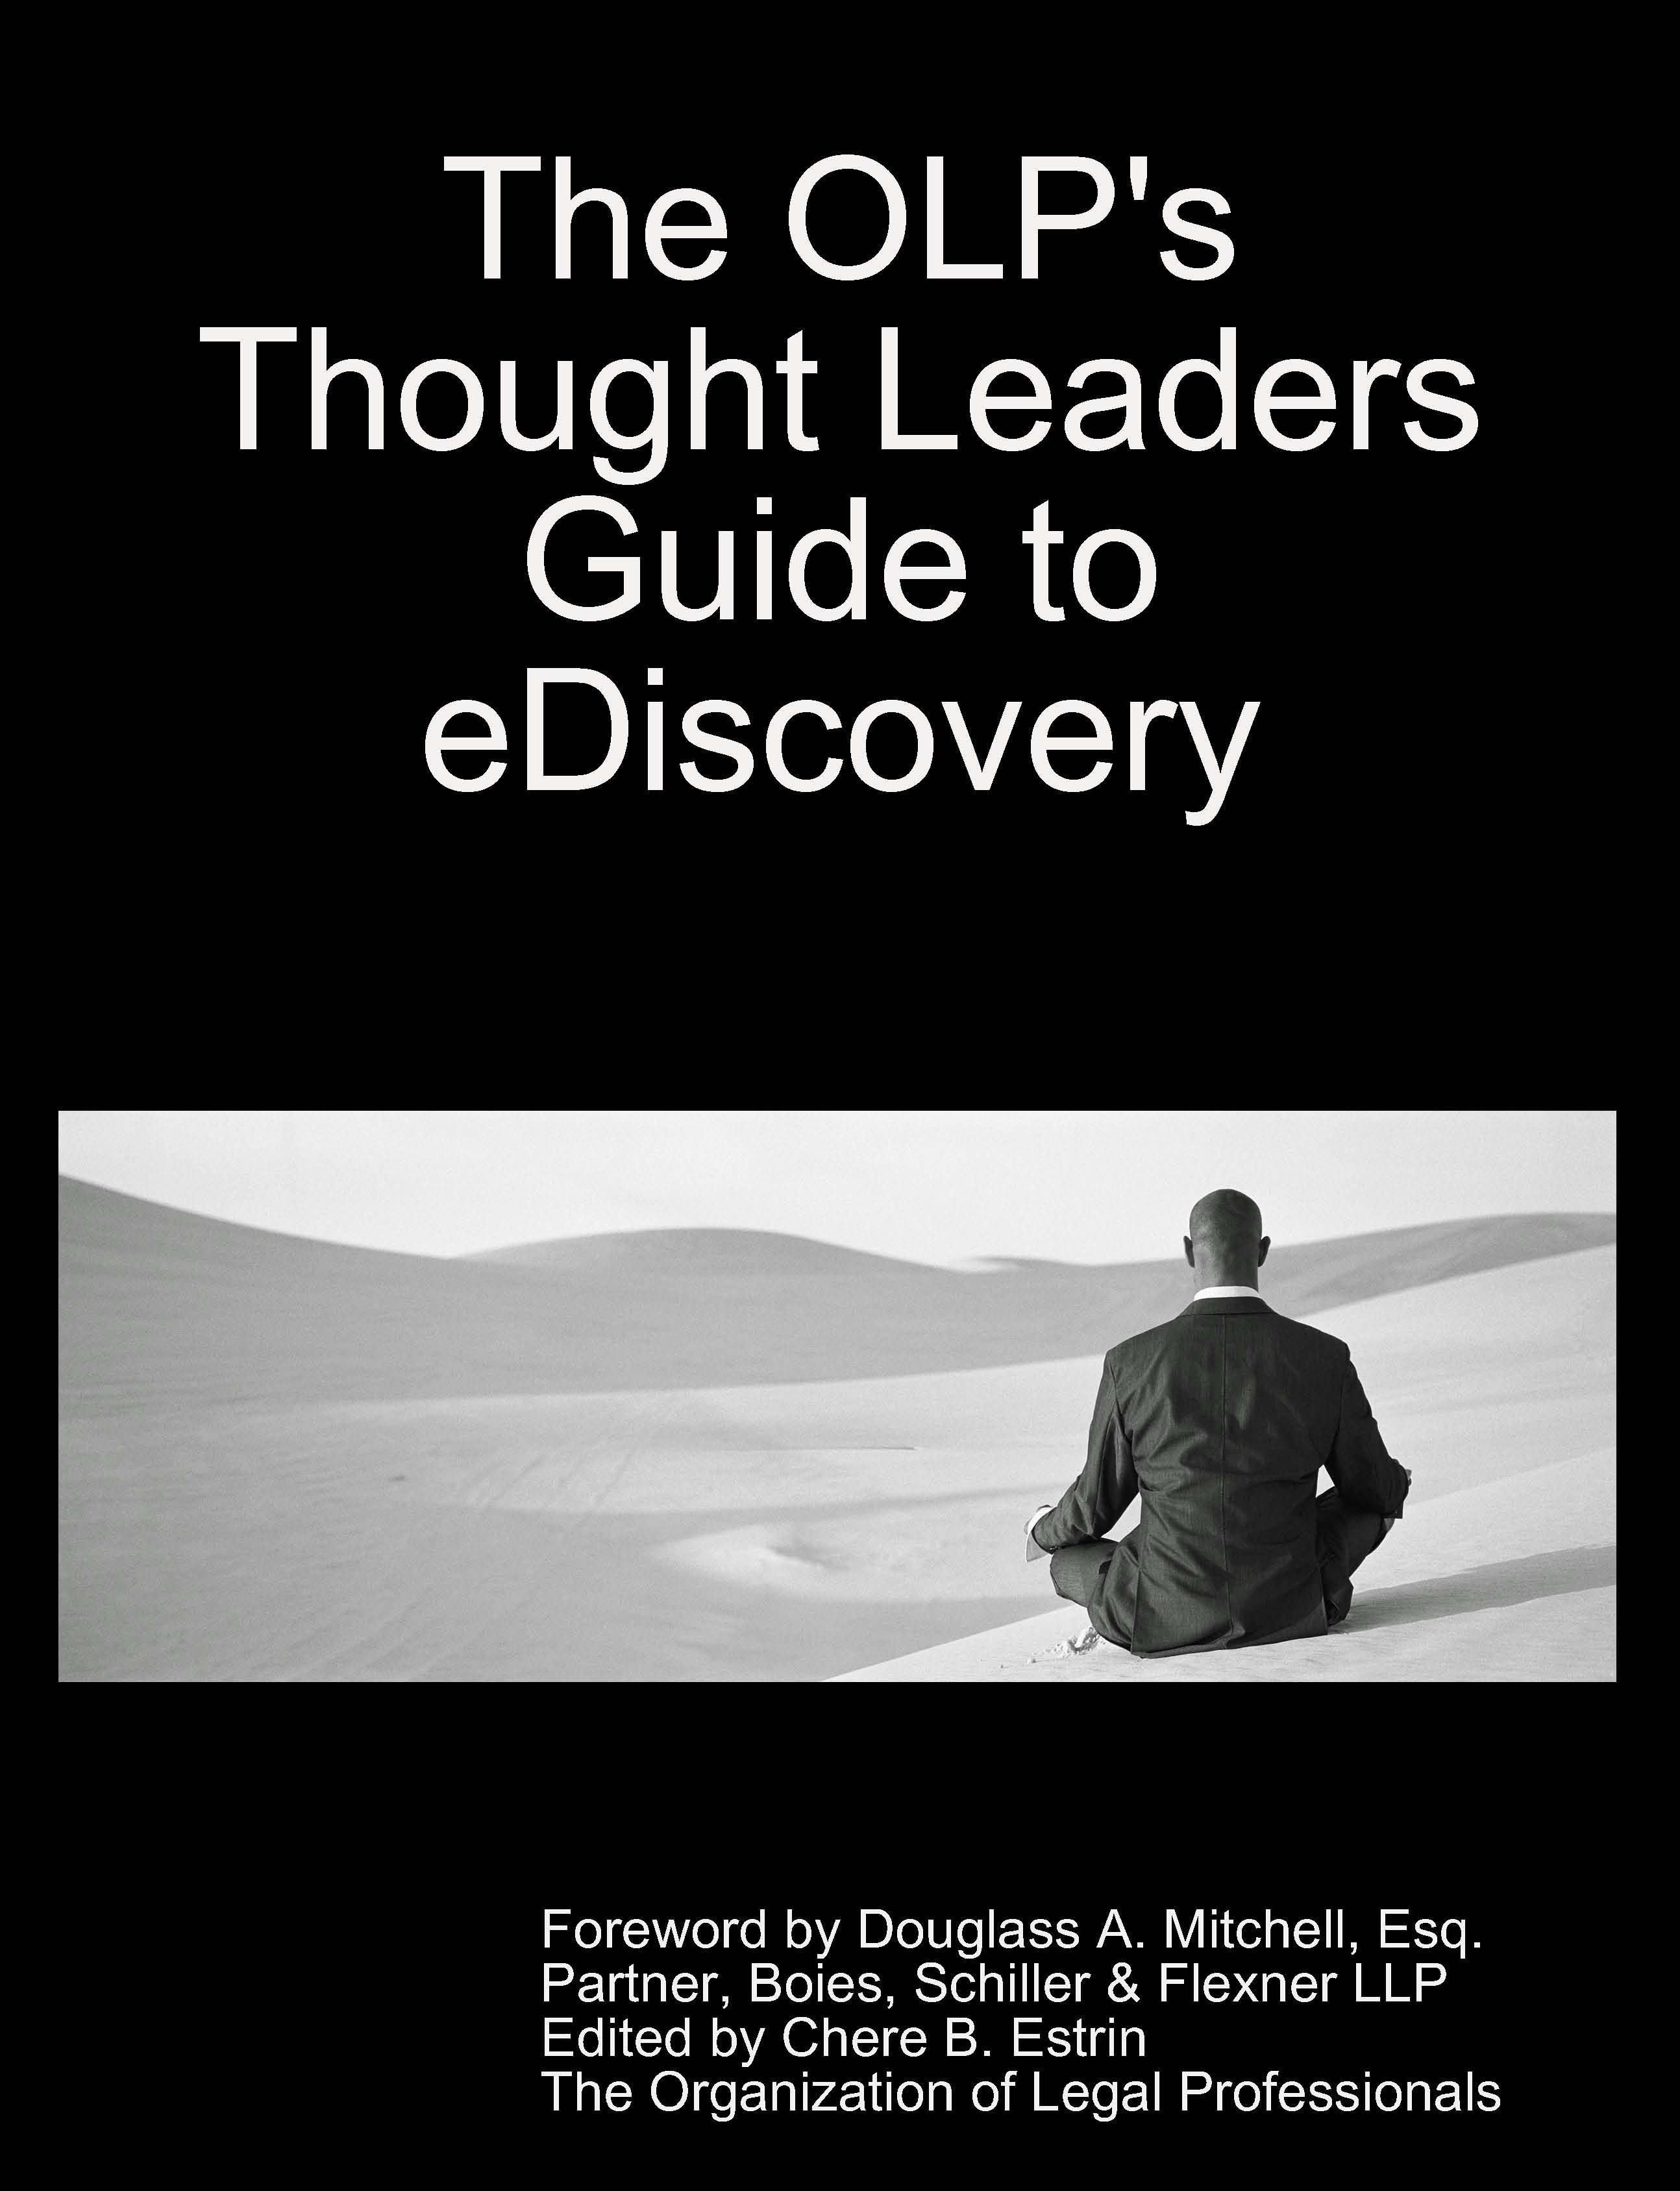 Thought Leaders Guide To Ediscovery Via Olp Ediscovery Pinterest